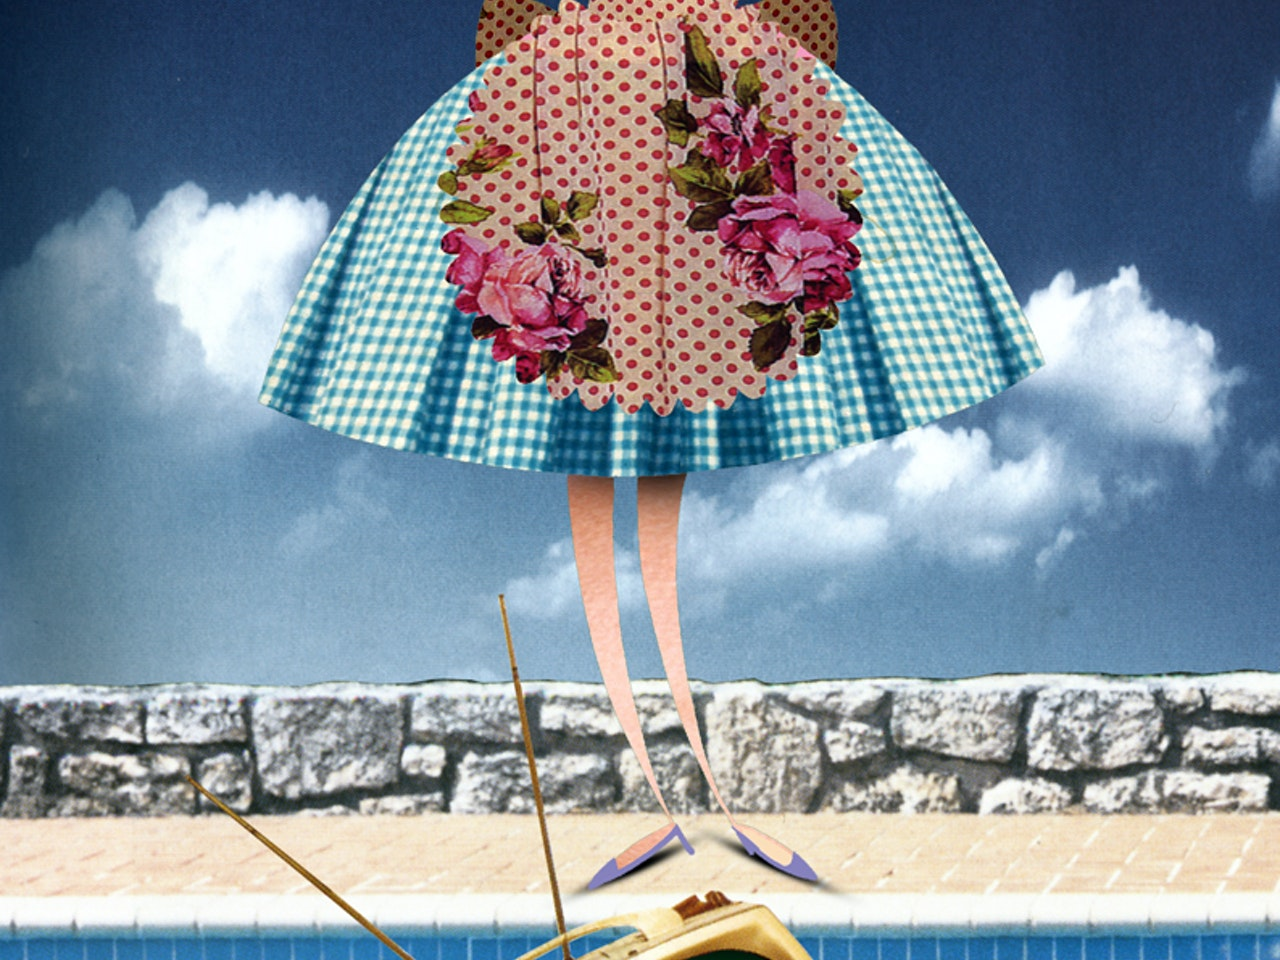 swimming pool house wife collage funny happy humorous comical colourful graphic illustration   retro vintage 1950s